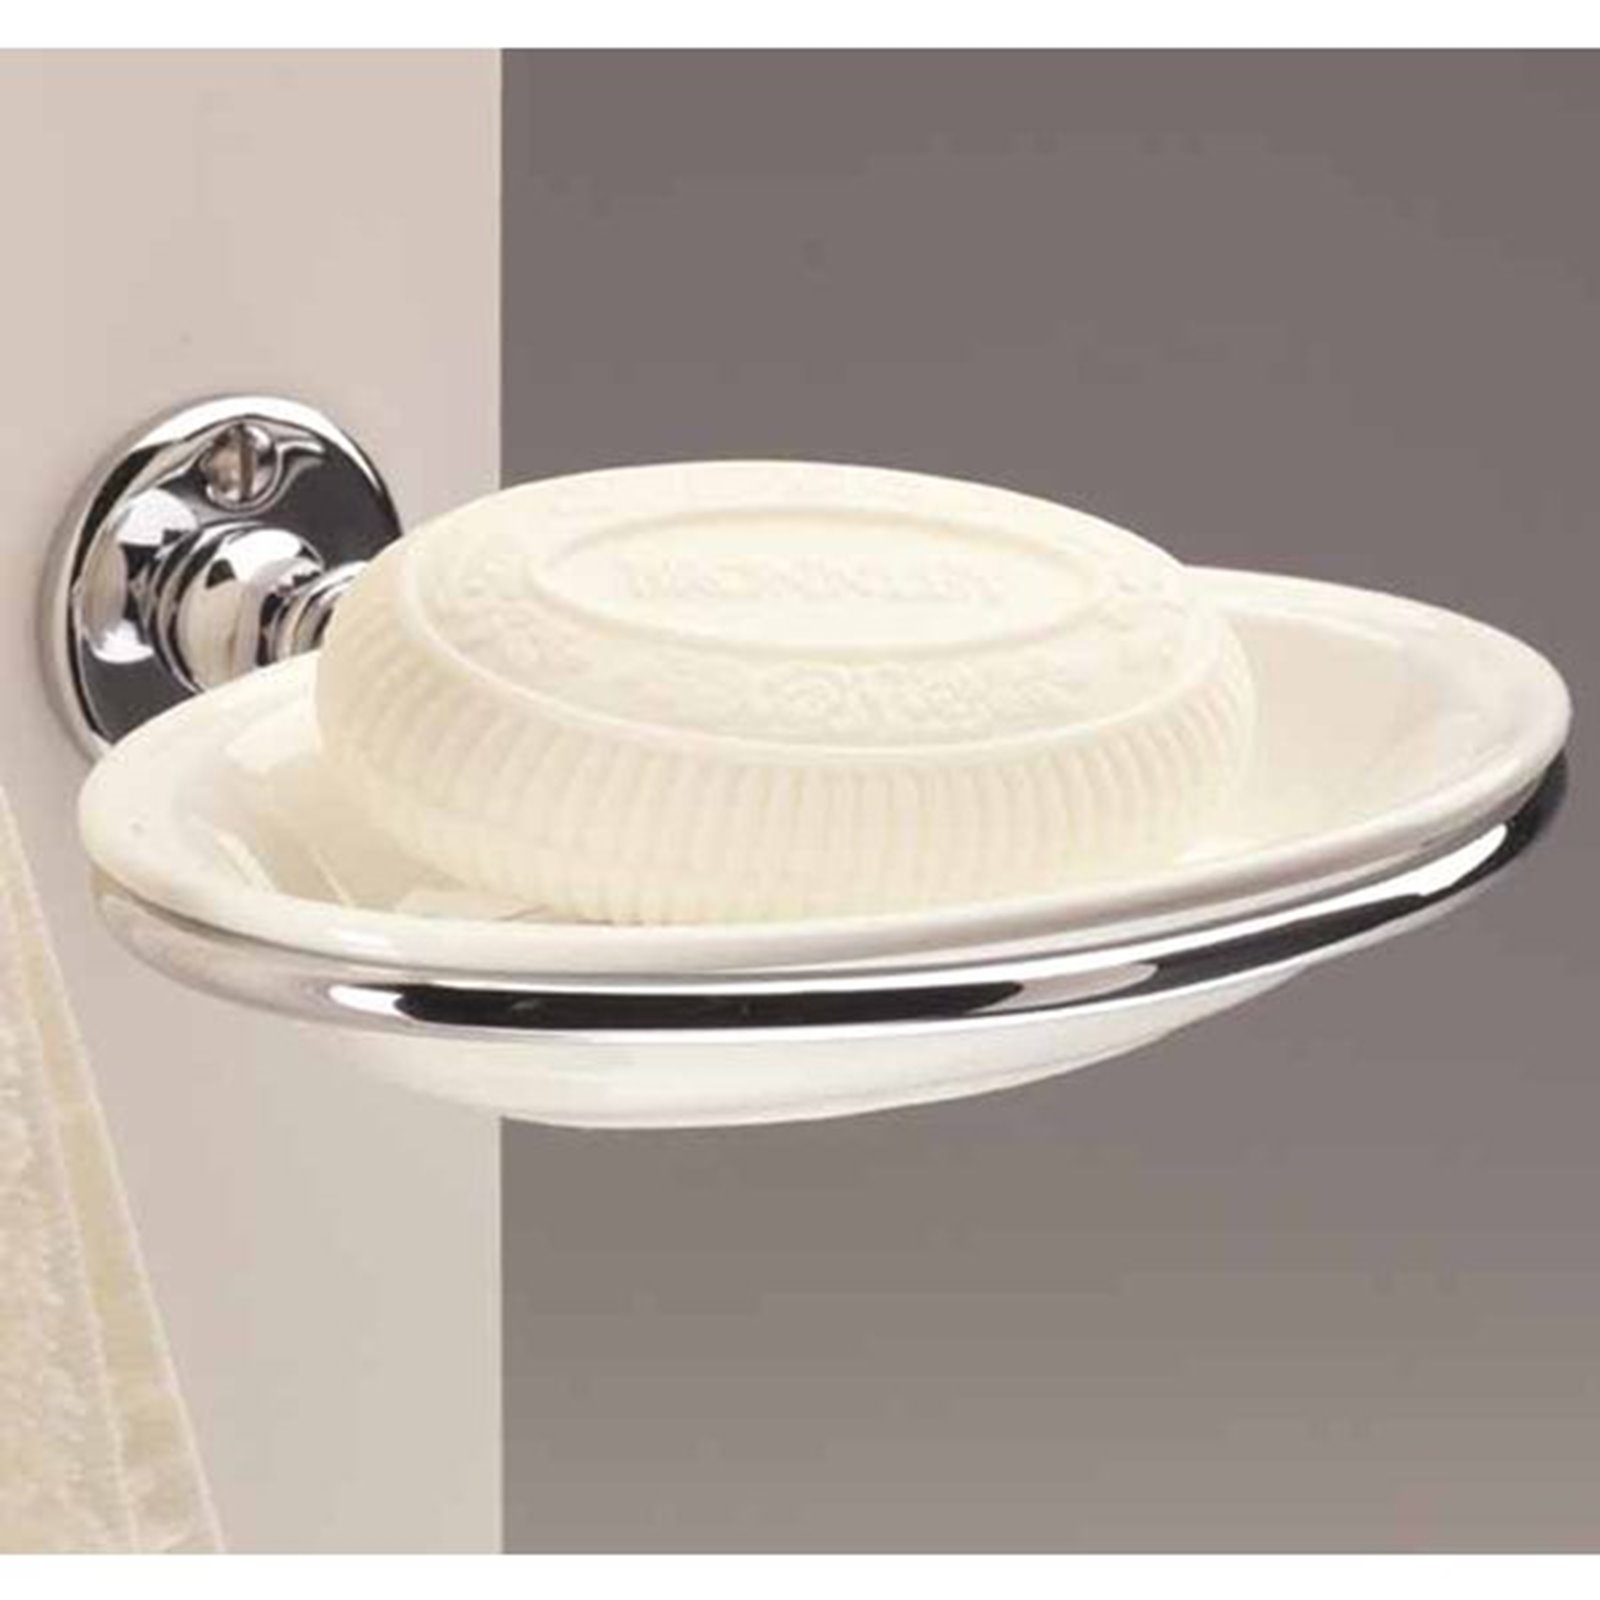 Bathroom Porcelain Soap Dish Image